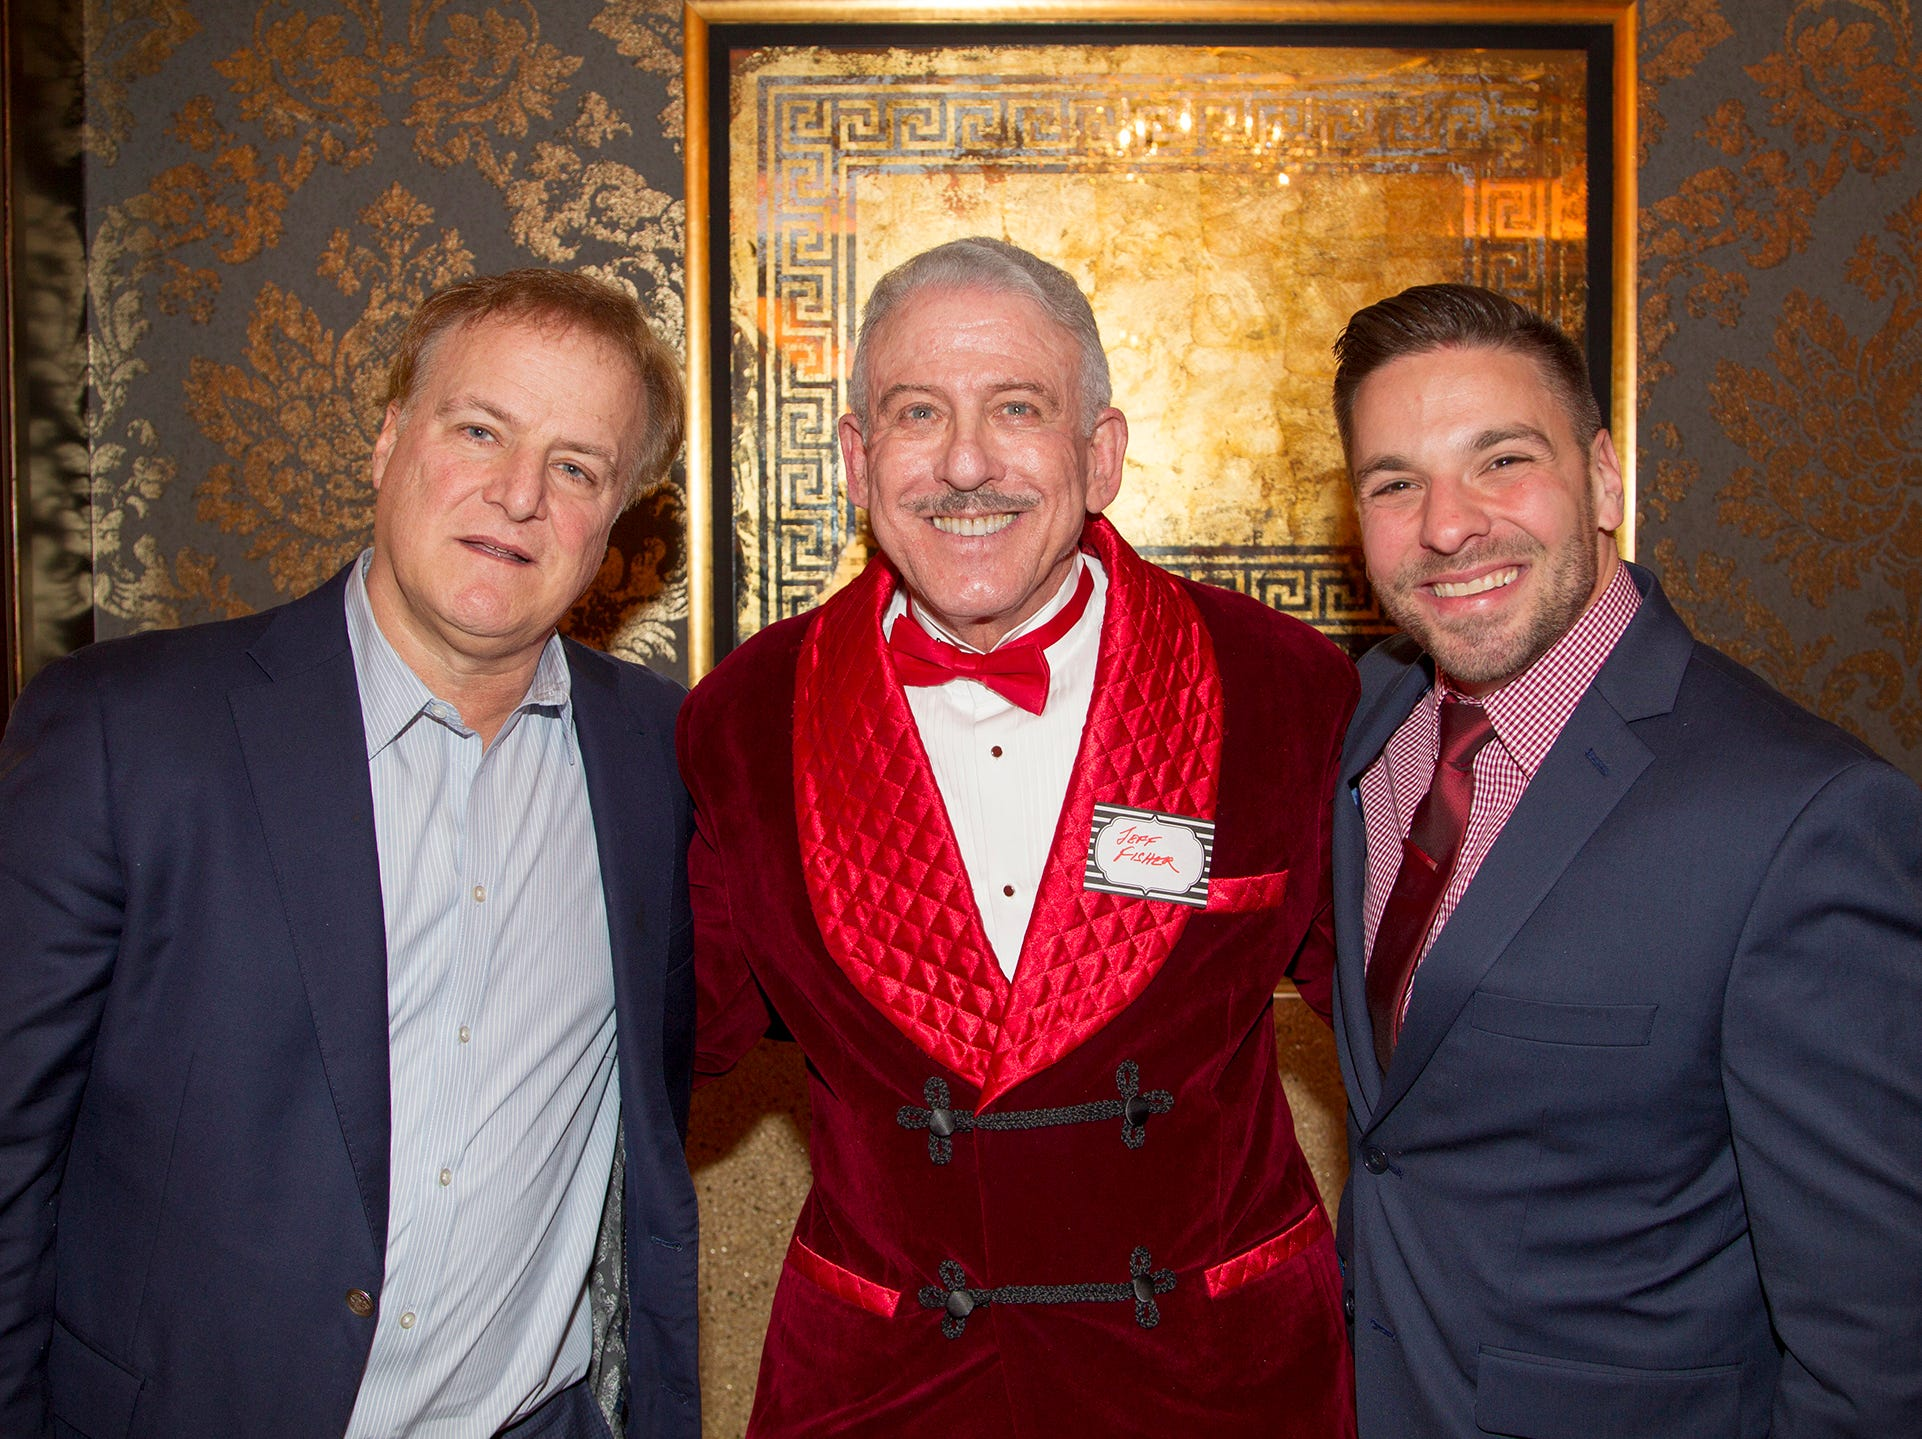 Tony Censoloo, Dr. Jeff Fisher, Dr. Rozenblatt. Institute for Educational Achievement (IEA) held its annual Dinner Dance at Seasons in Washington Township. 02/02/2019